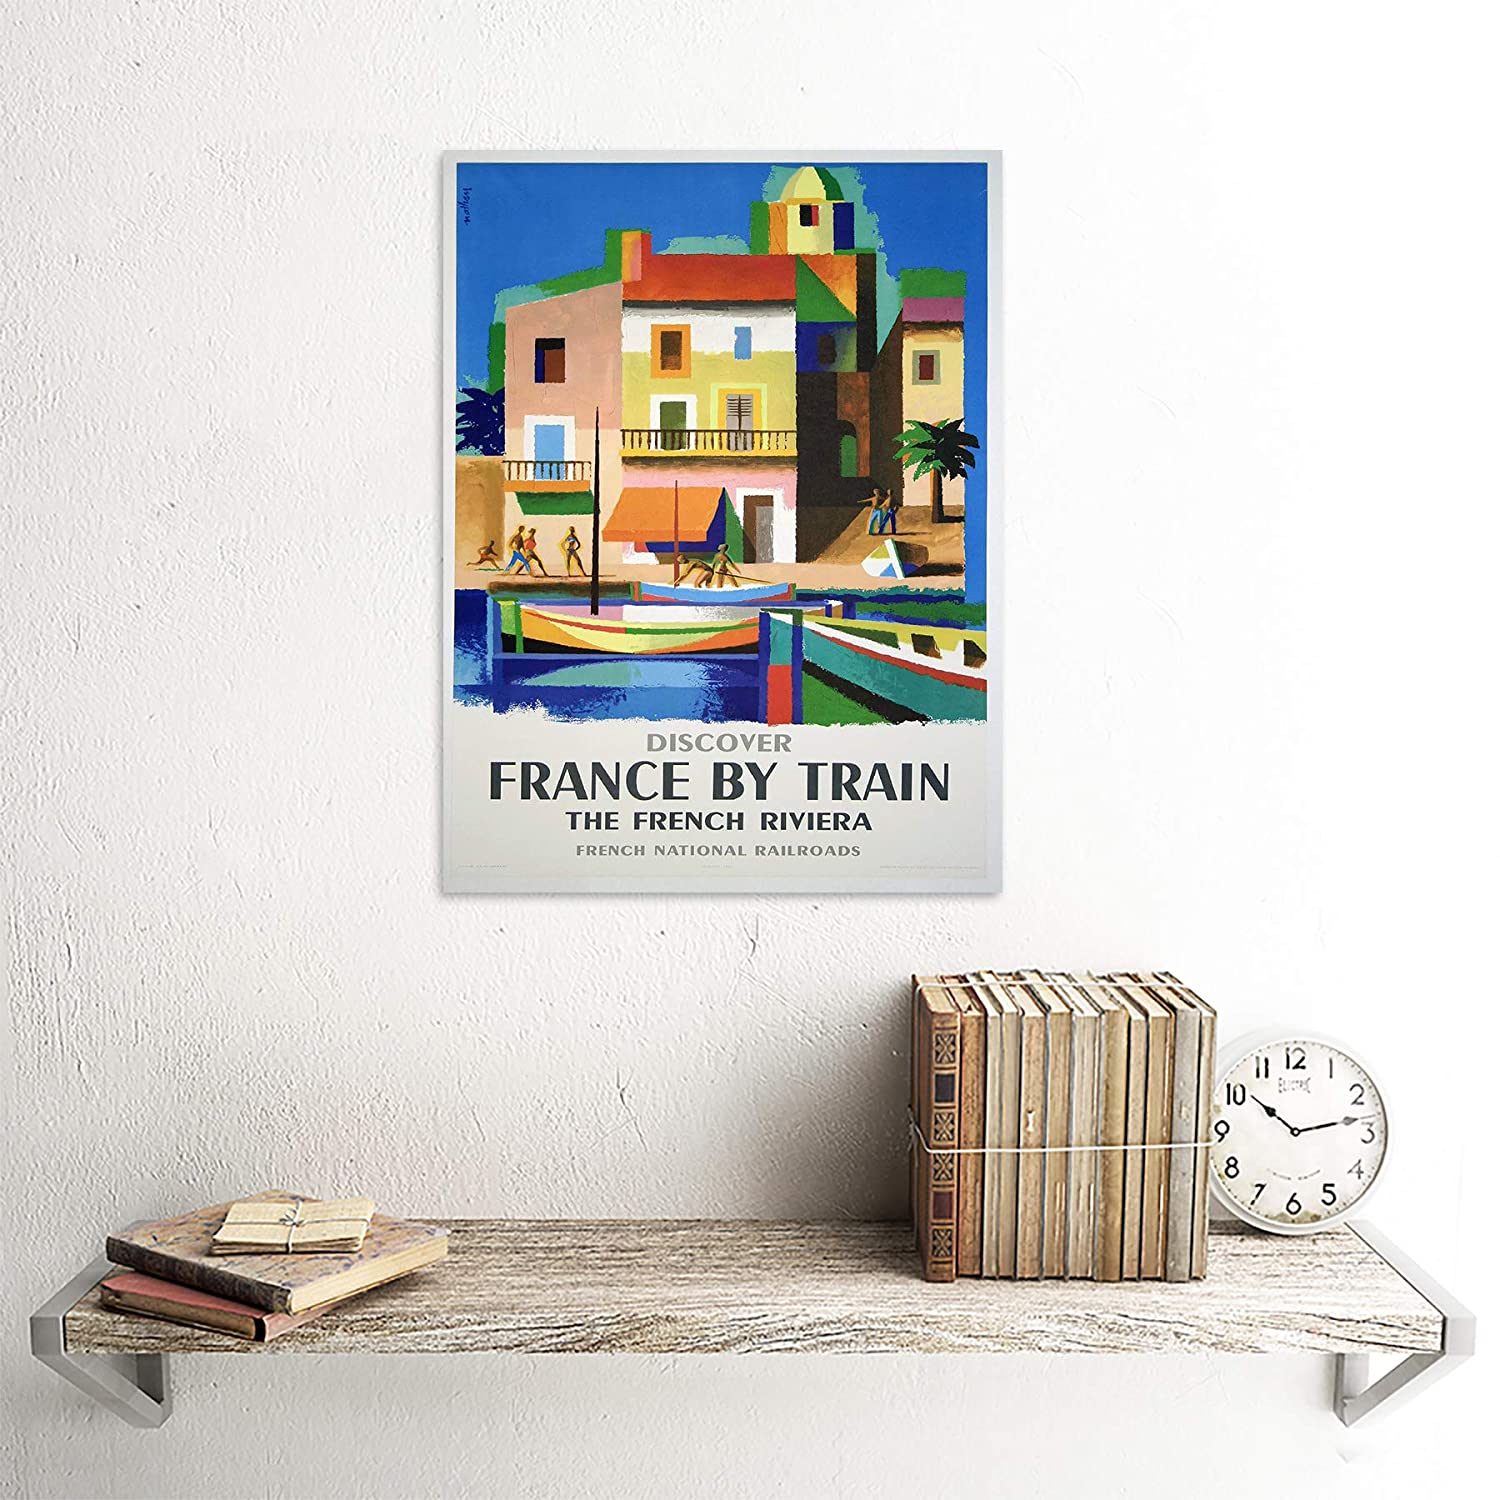 TRAVEL FRANCE TRAIN RAILWAY RIVIERA FRENCH RAILROAD BOAT VINTAGE POSTER 970PY